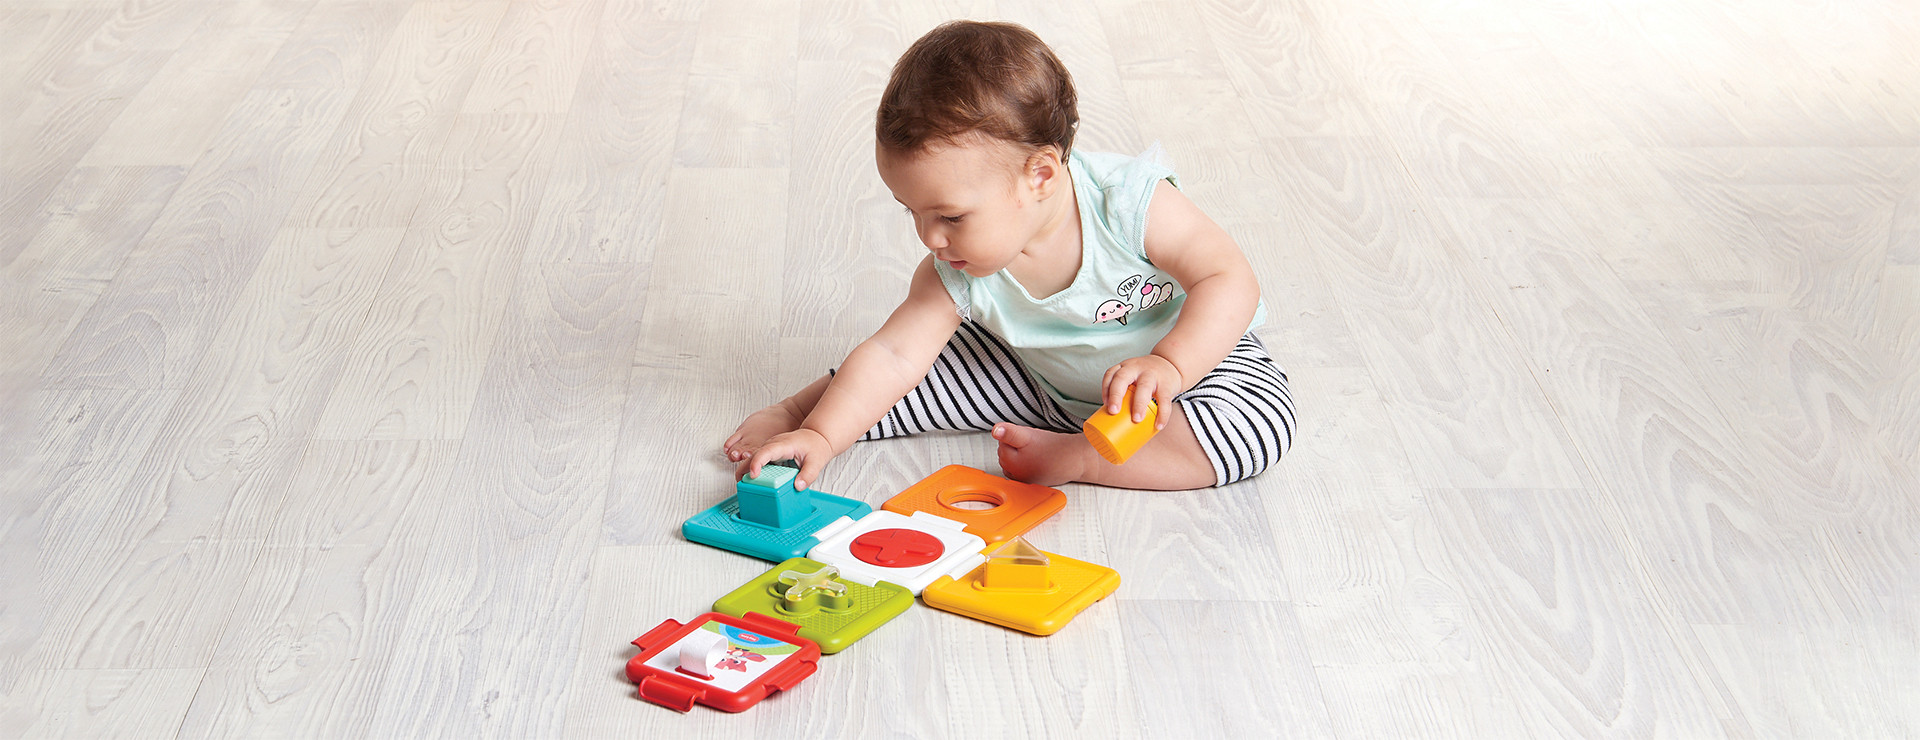 Puzzle with rotating peek-a-boo circle introduces baby to matching shapes